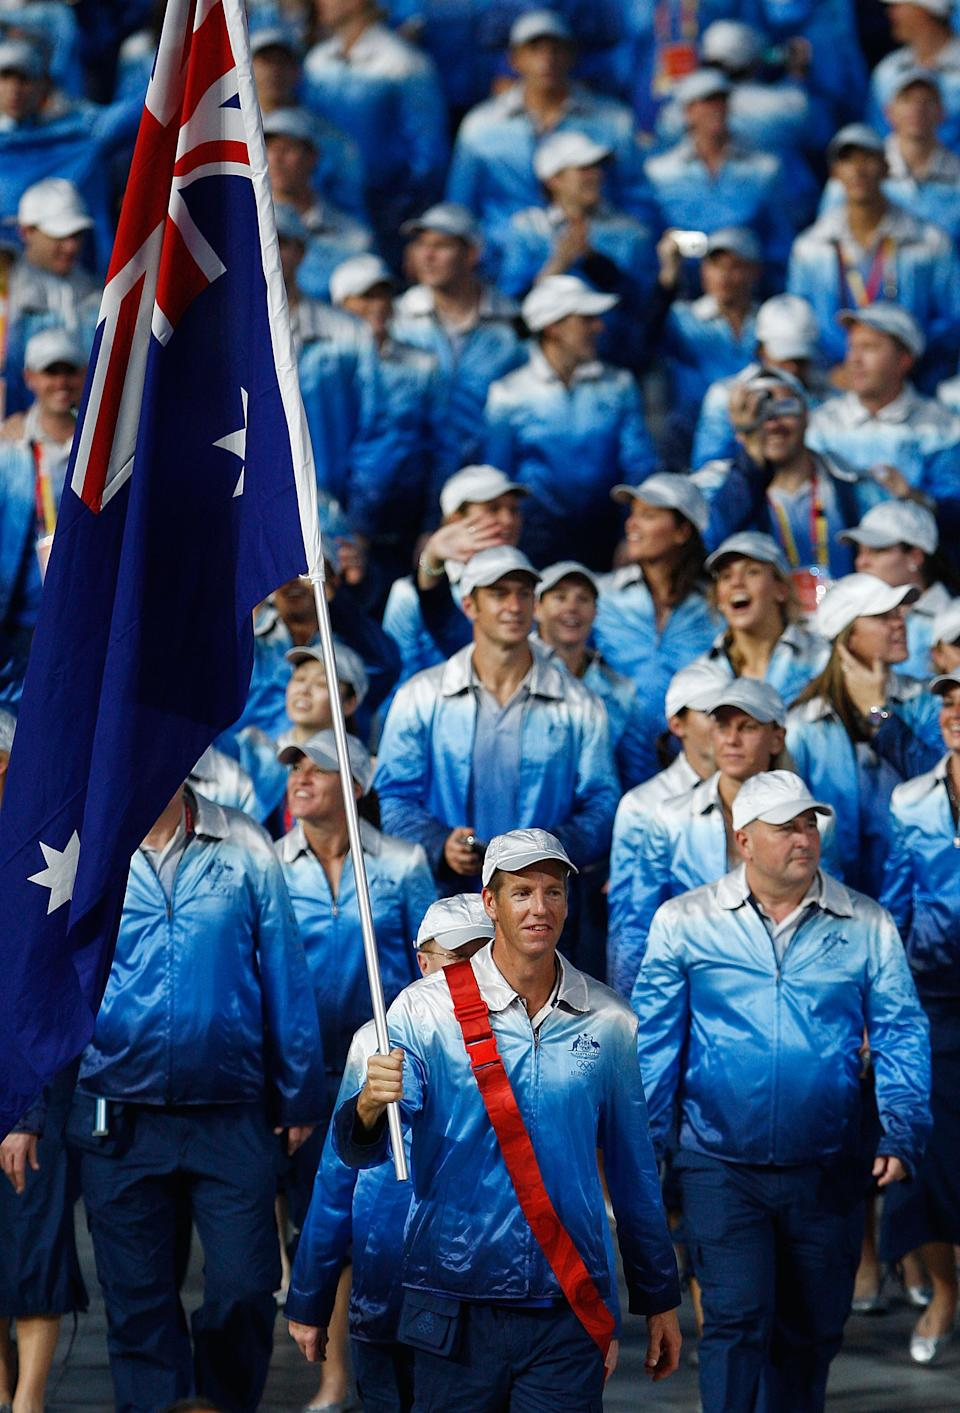 """In Australia, they do things a little different.They don't announce their flag bearer until the night before the Olympics, which becomes <a href=""""http://bit.ly/NeK0lj"""" rel=""""nofollow noopener"""" target=""""_blank"""" data-ylk=""""slk:gambling fodder for Aussies"""" class=""""link rapid-noclick-resp"""">gambling fodder for Aussies</a>. Australian rower and three-time Olympic gold medalist James Tomkins was the winner in 2008."""